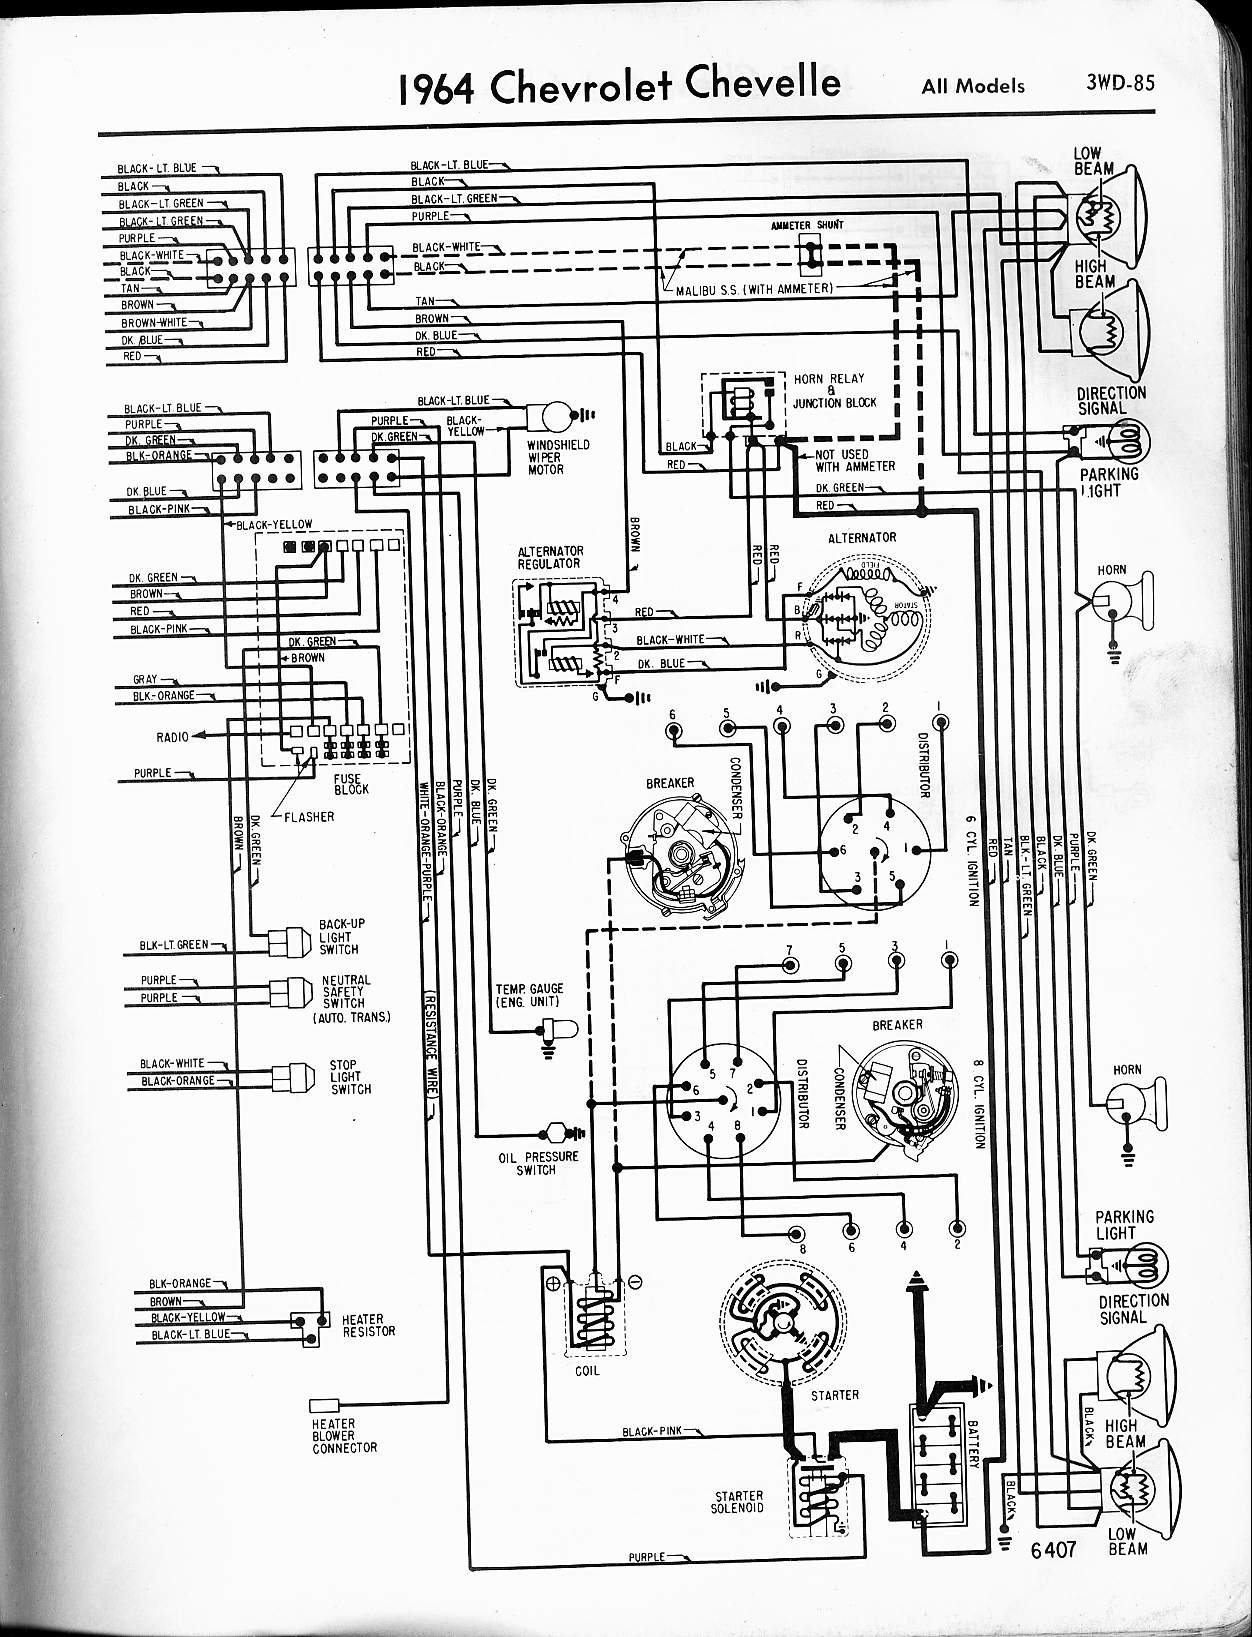 MWireChev64_3WD 085 chevy diagrams 1964 chevy c10 wiring diagram at cos-gaming.co